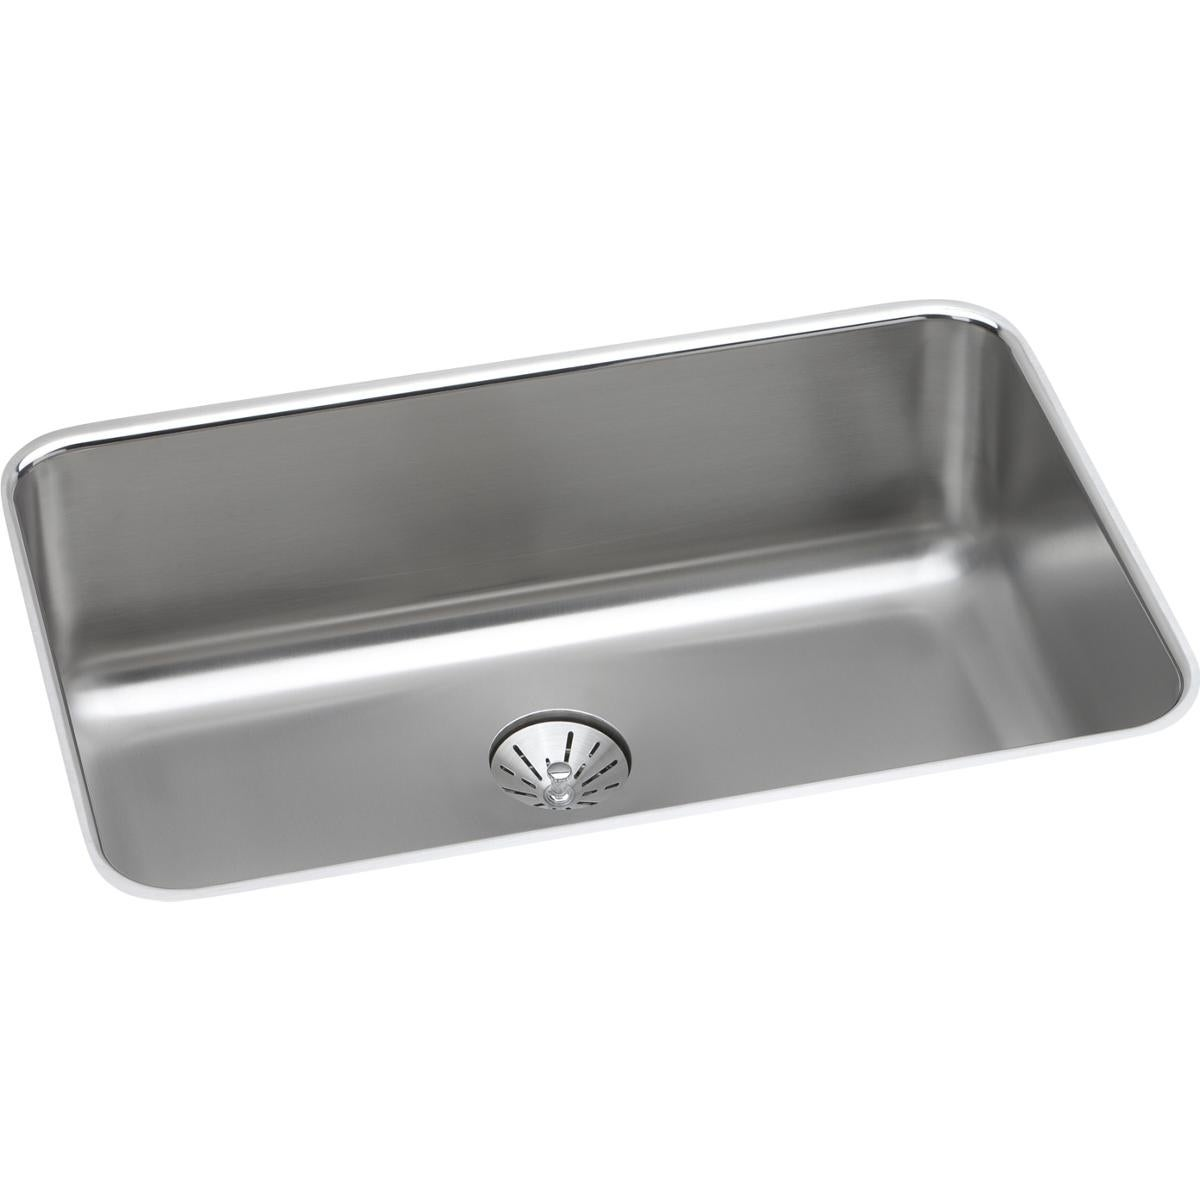 Elkay Lustertone Stainless Steel 26-1/2 x 18-1/2 x 8, Single Bowl Undermount Sink with Perfect Drain (Lustrous Satin)